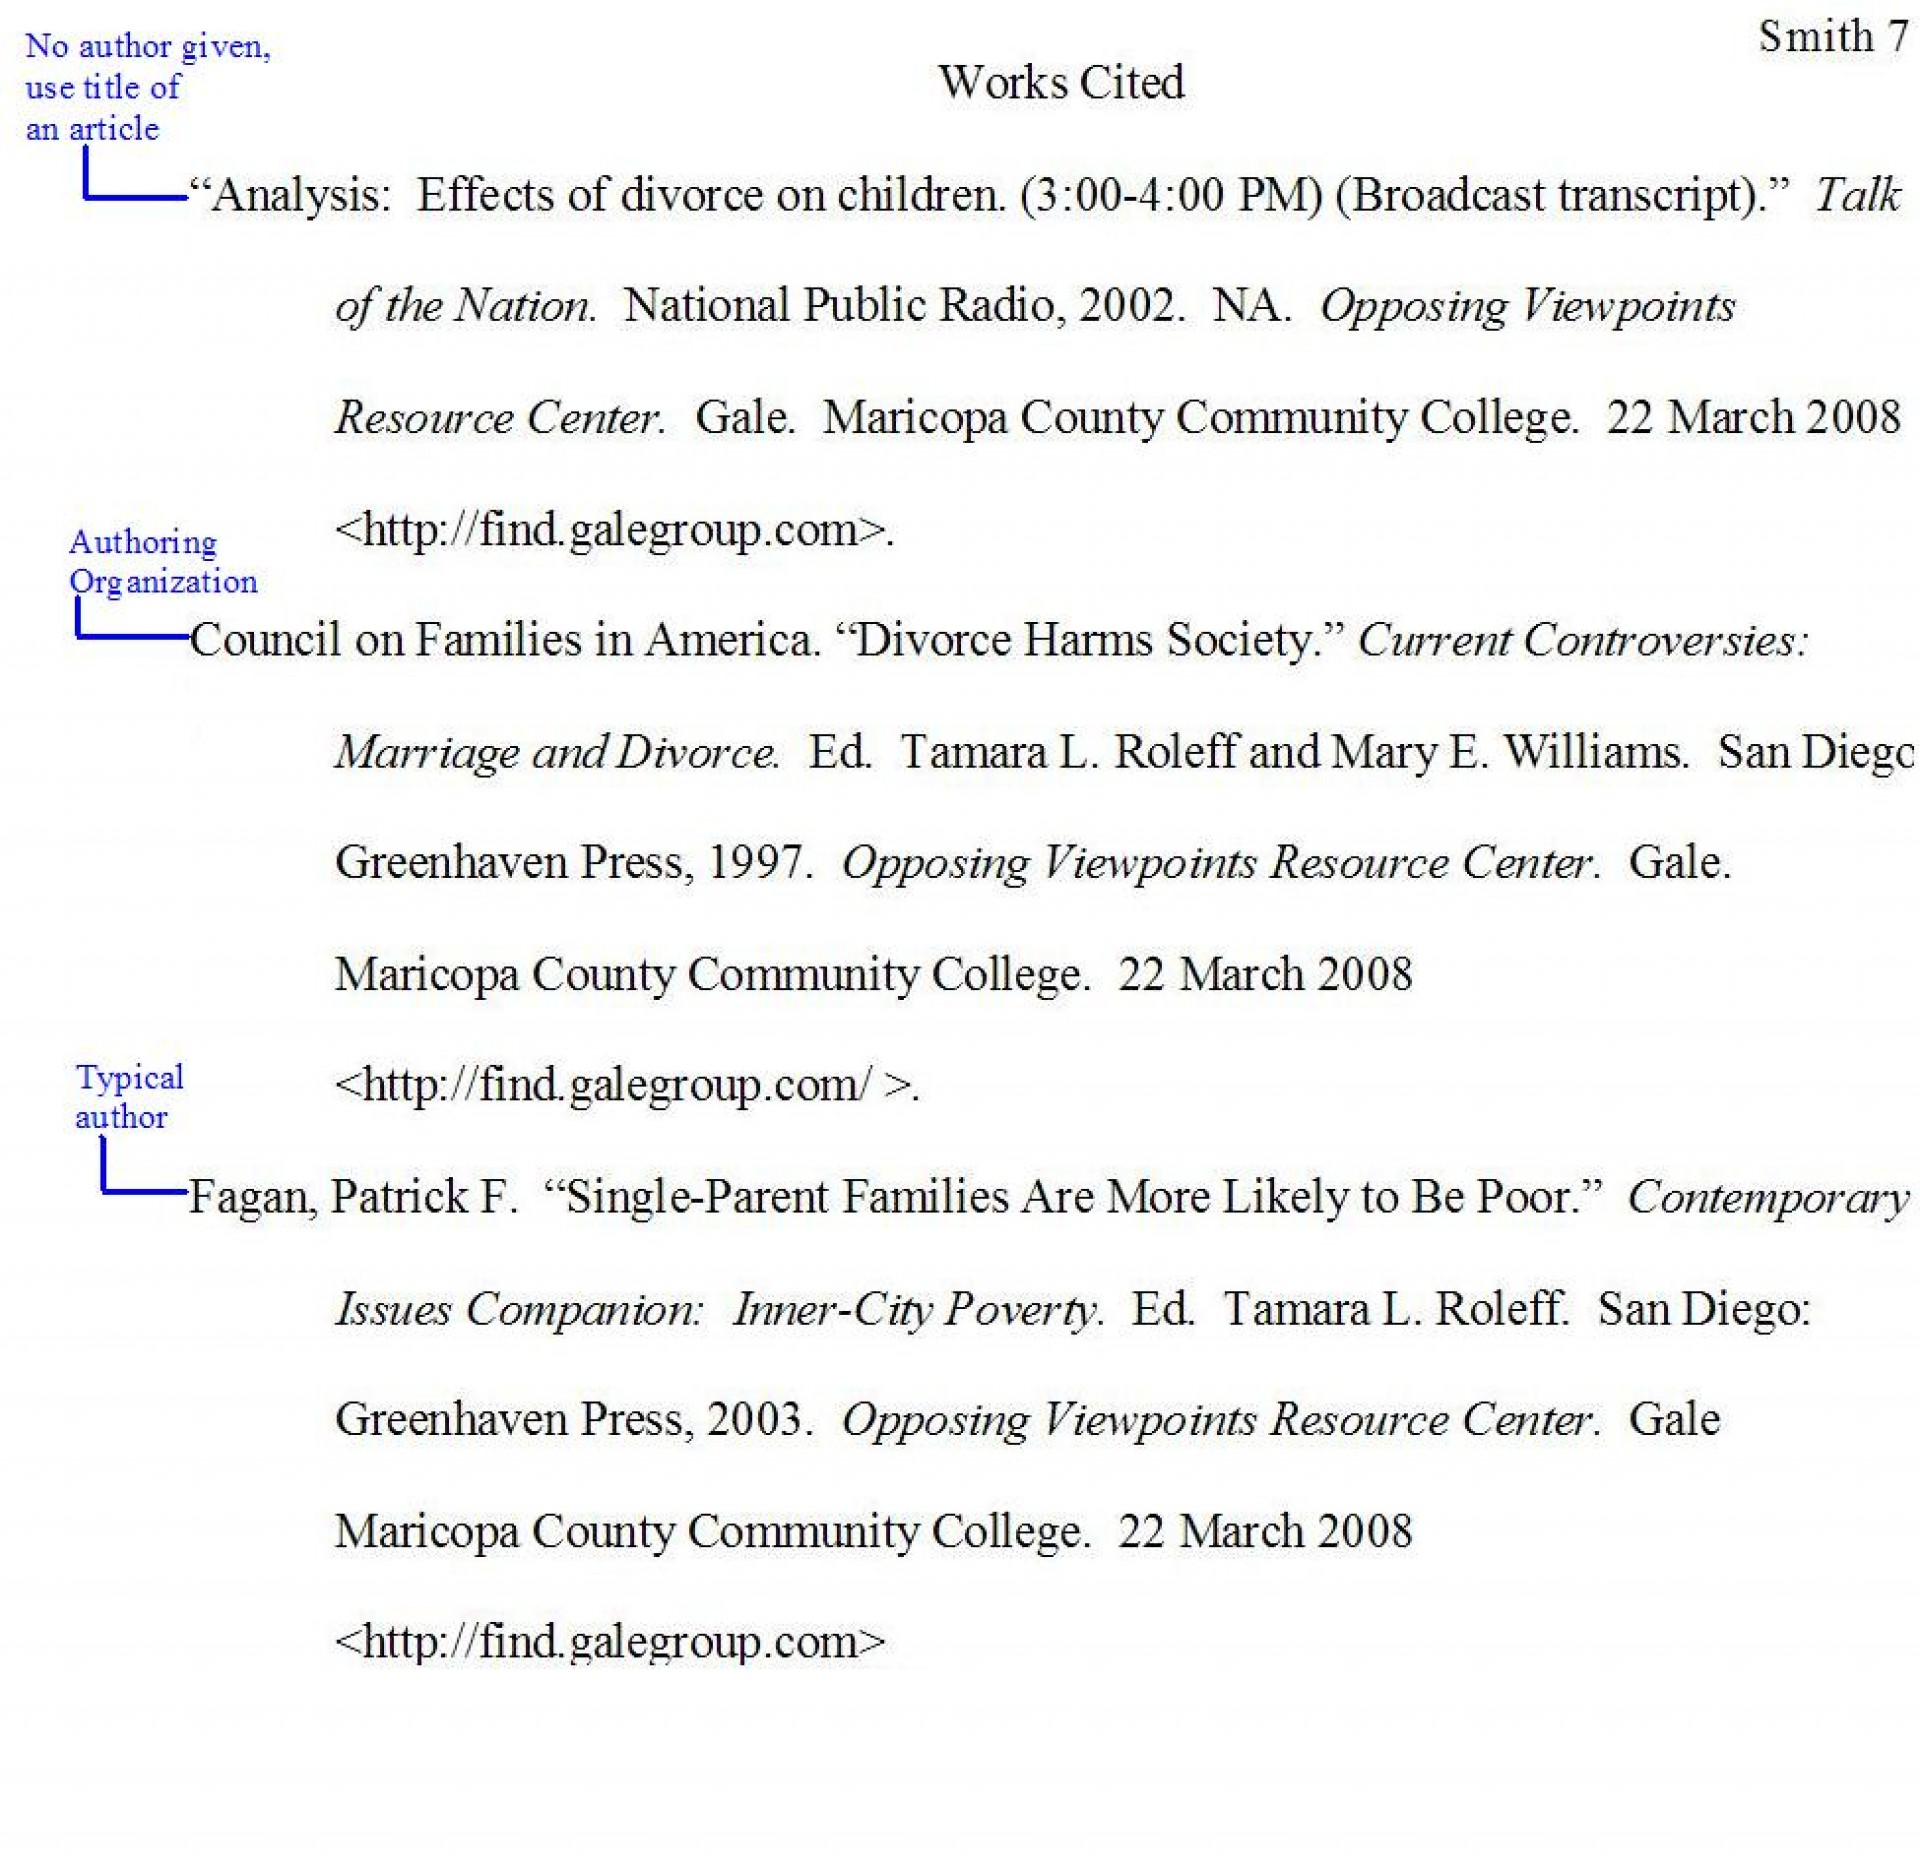 015 Samplewrkctd Jpg Research Paper Example Mla Shocking Format Of A Style Works Cited 1920